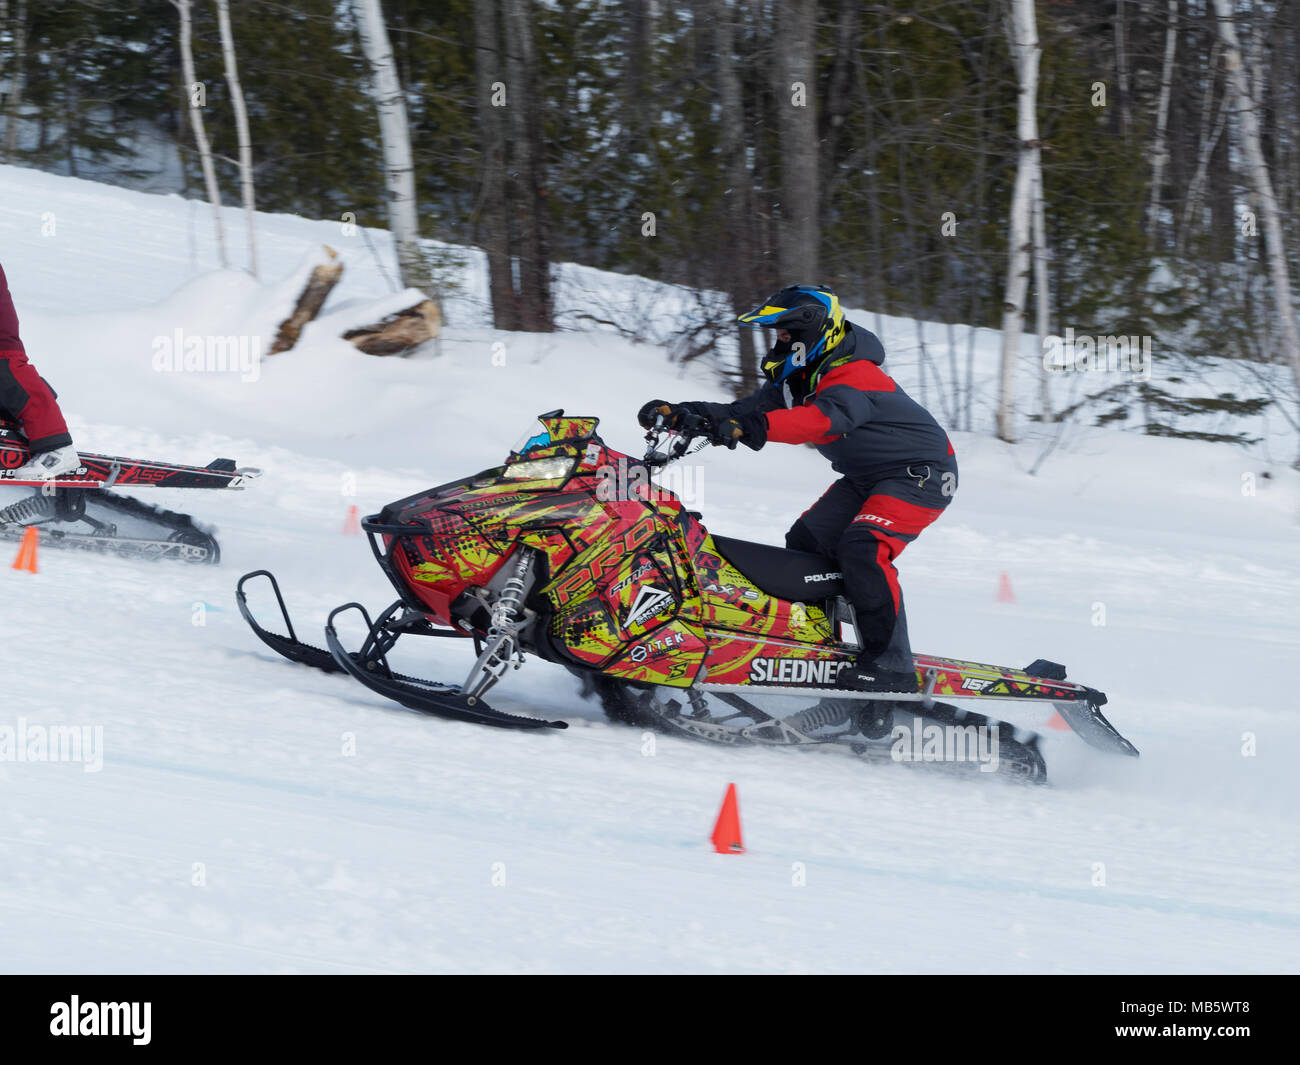 Quebec, Canada 4/7/2018 Snowmobile uphill drag race held on the slopes of Val Saint-Come ski resort - Stock Image